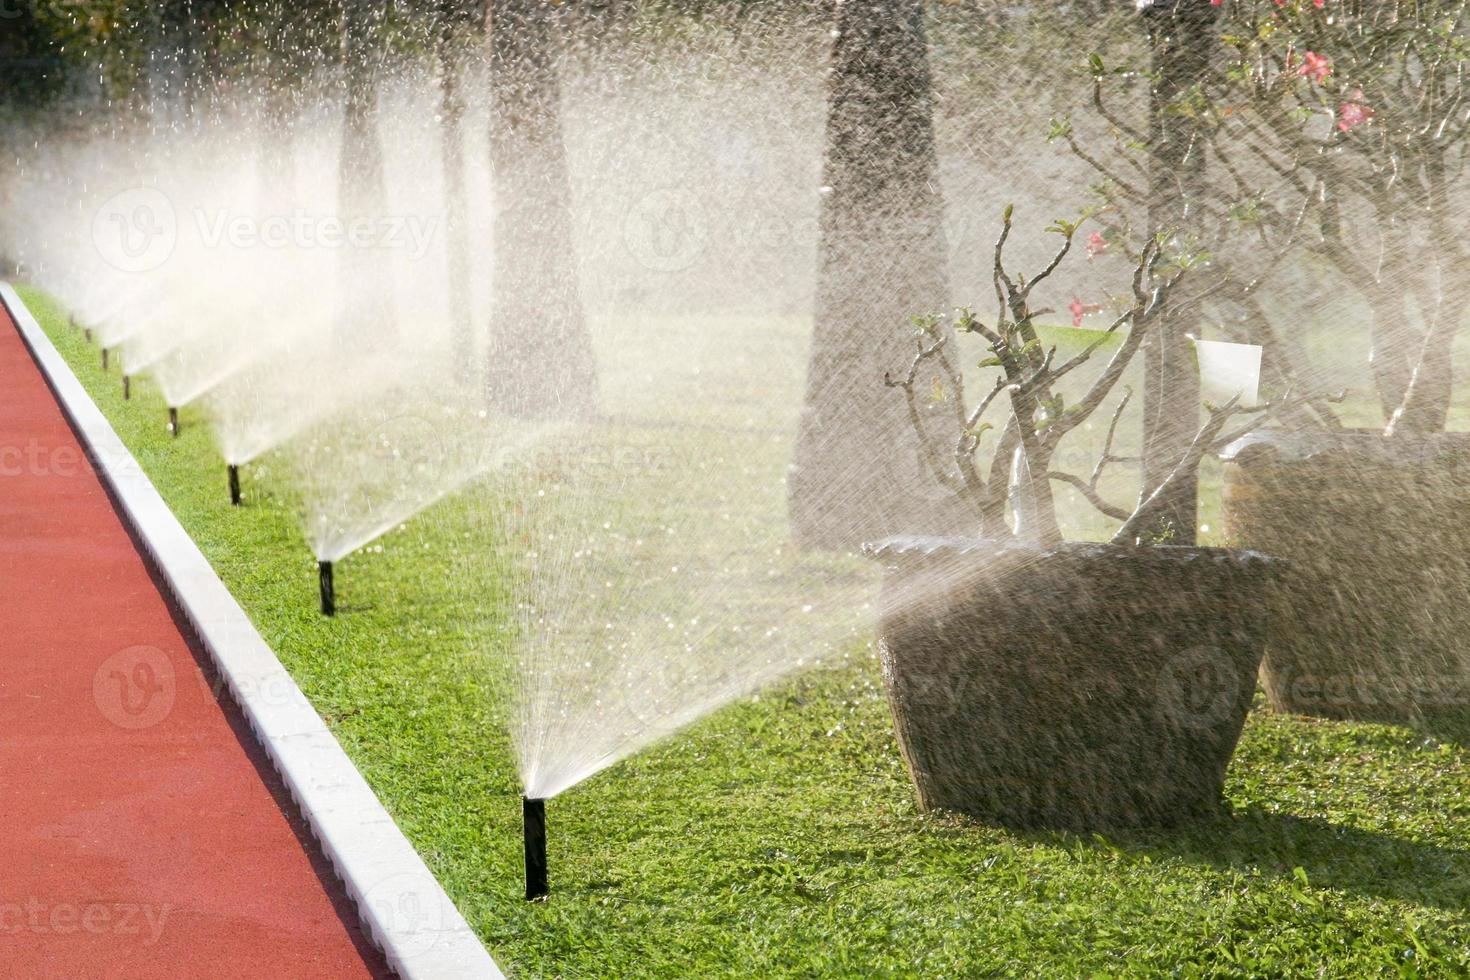 Row of sprinkler heads watering the grass photo